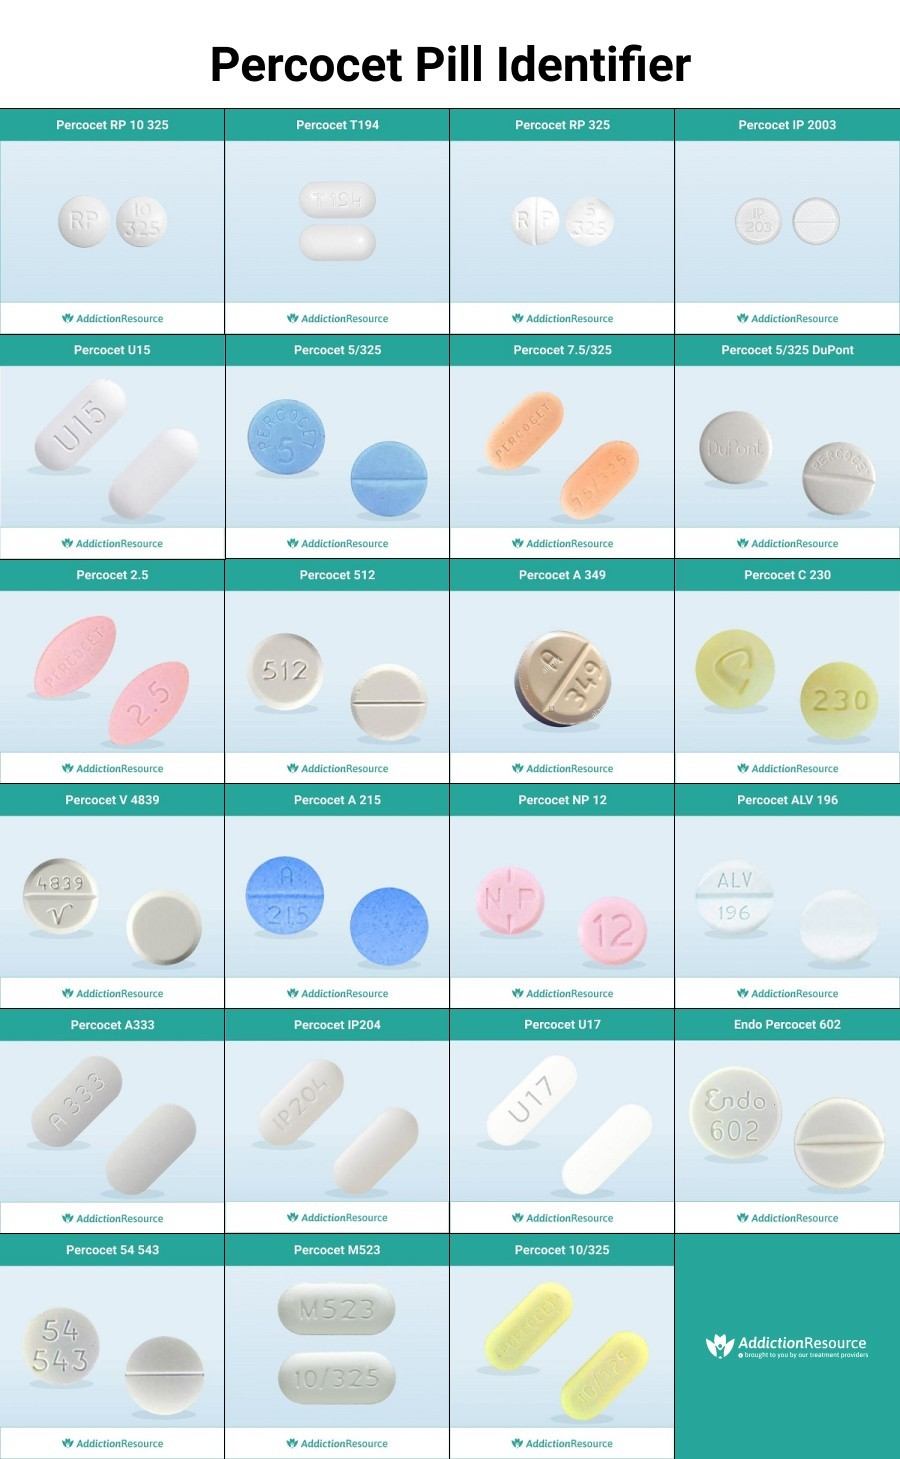 Percocet Pill Identifier: What Does Percocet Look Like?